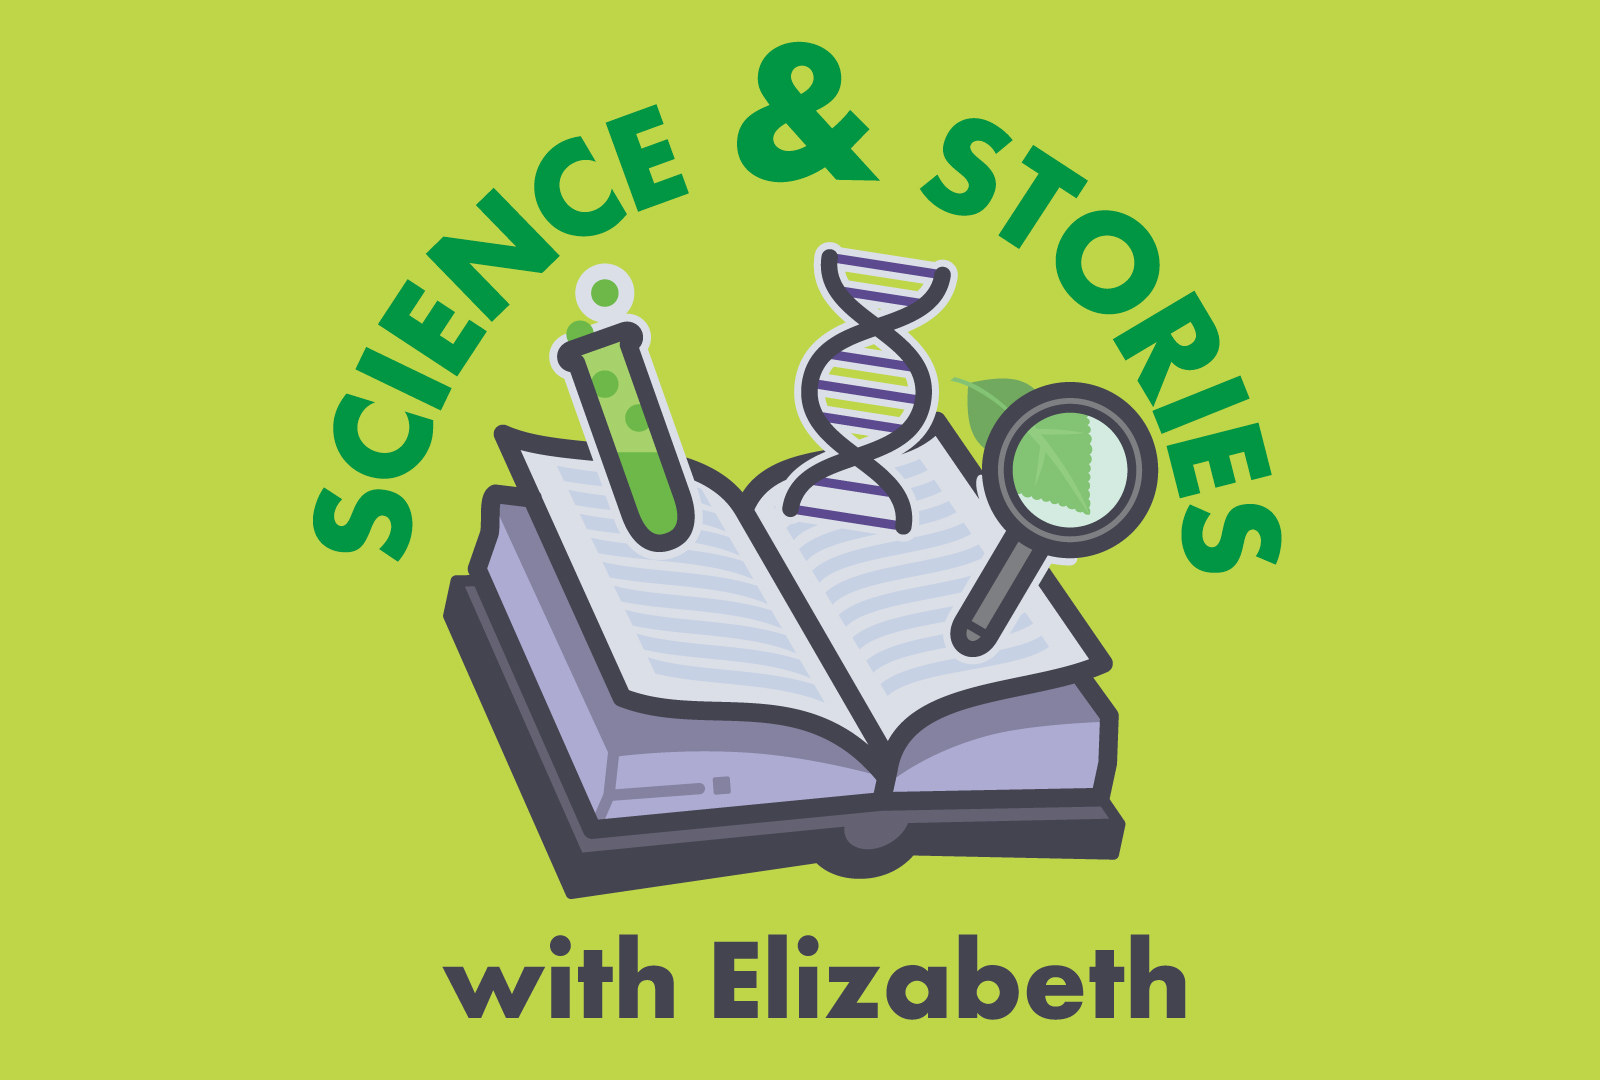 Green image with the words Science and Stories with Elizabeth with a graphic of an open book